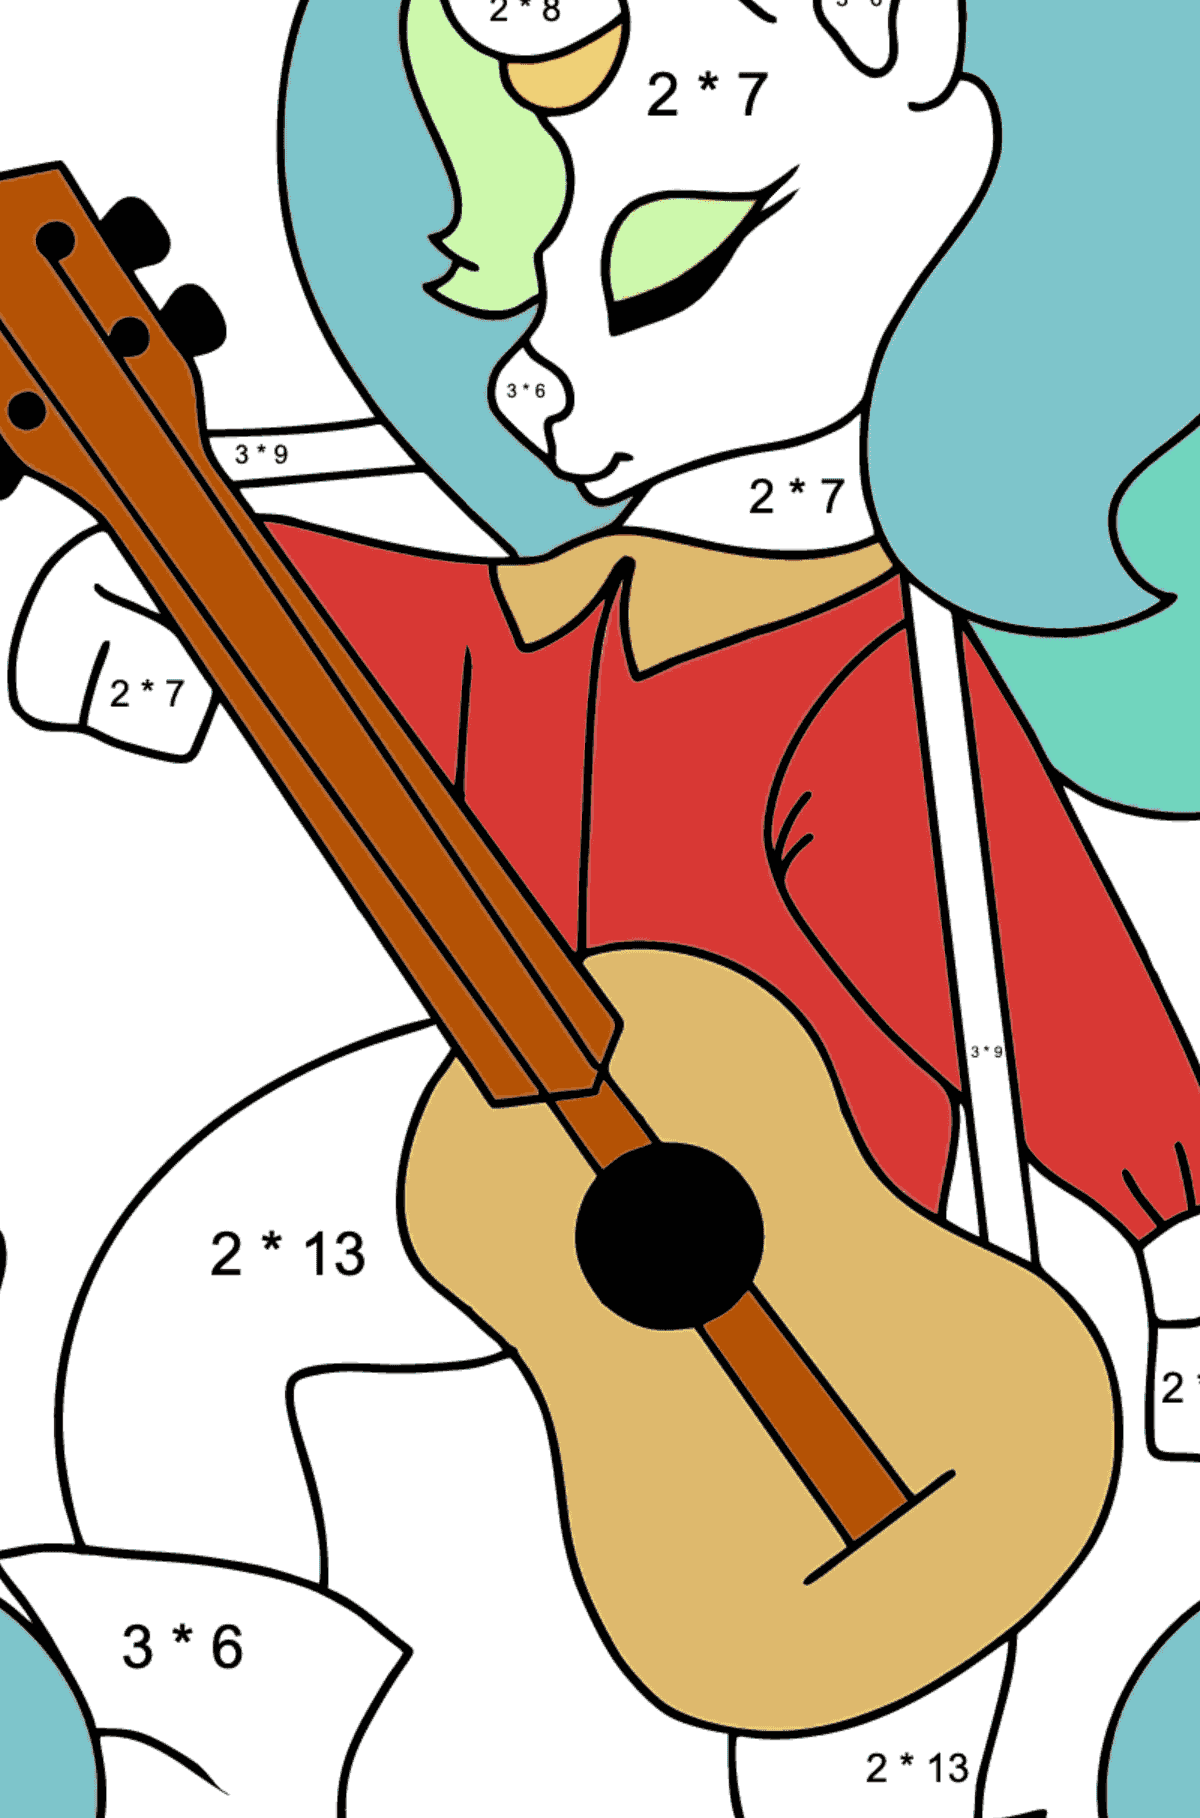 Complex Coloring Page - A Unicorn with a Guitar for Kids  - Color by Number Multiplication